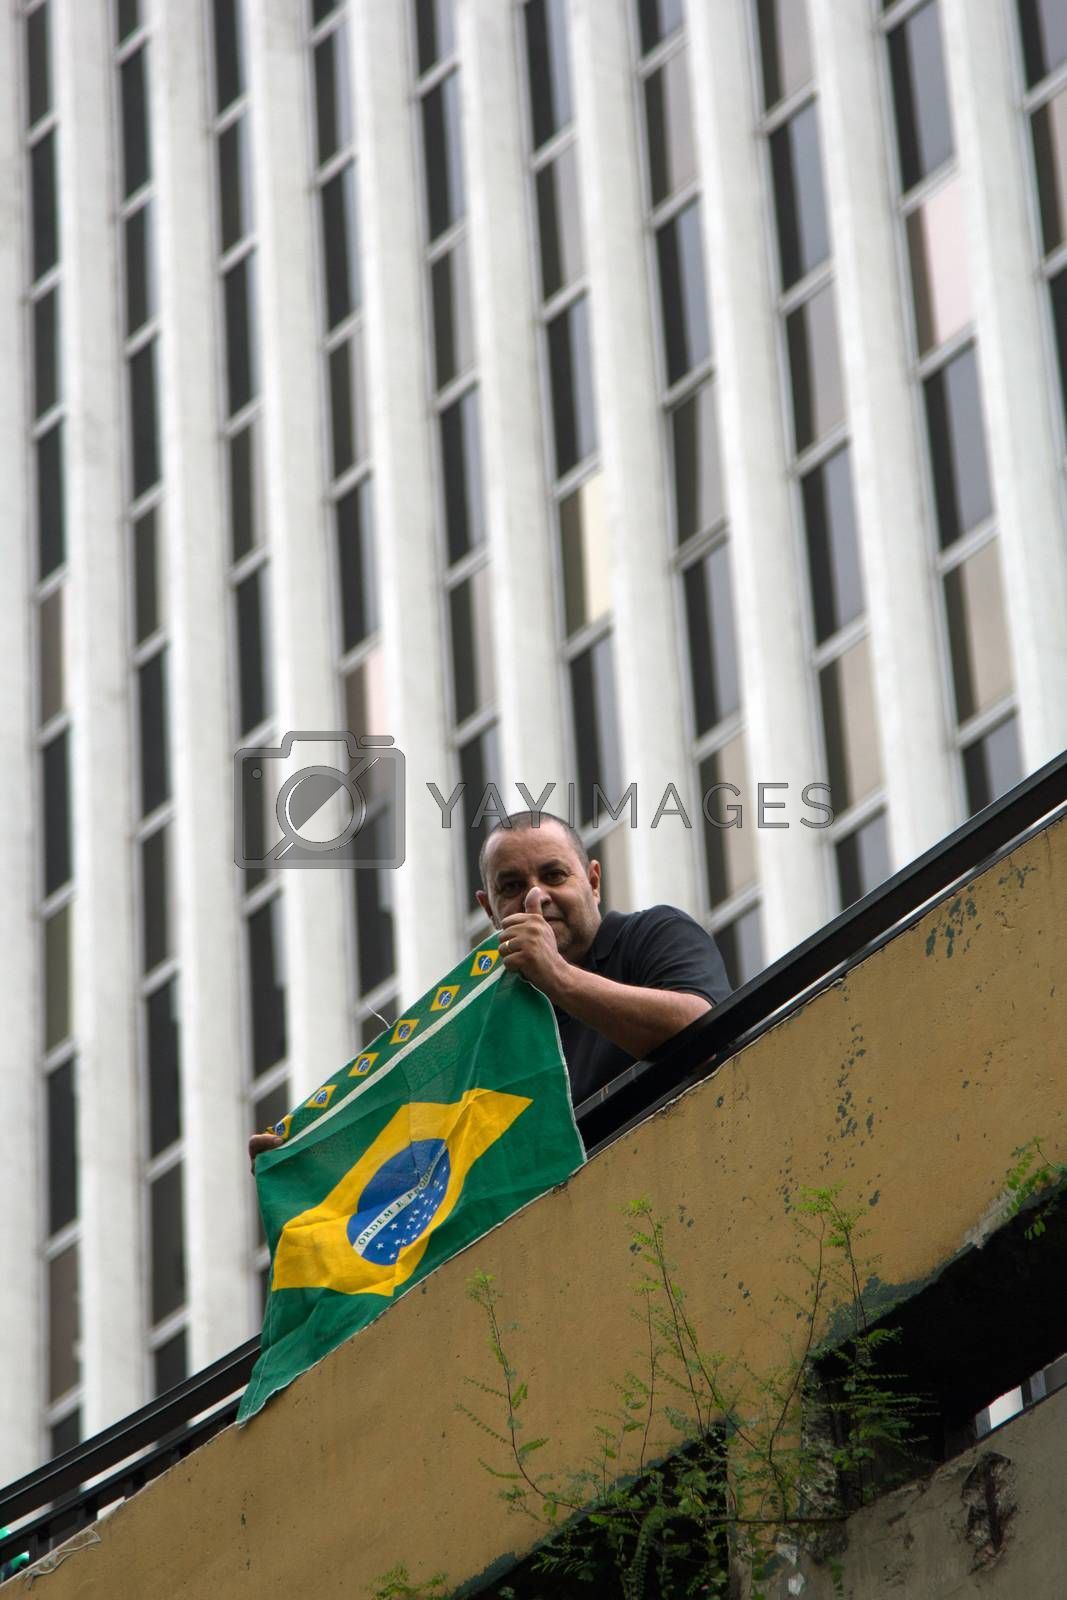 Paulo Brazil March 13, 2016: One unidentified man with brazilian flag in the biggest protest against federal government corruption in Sao Paulo.